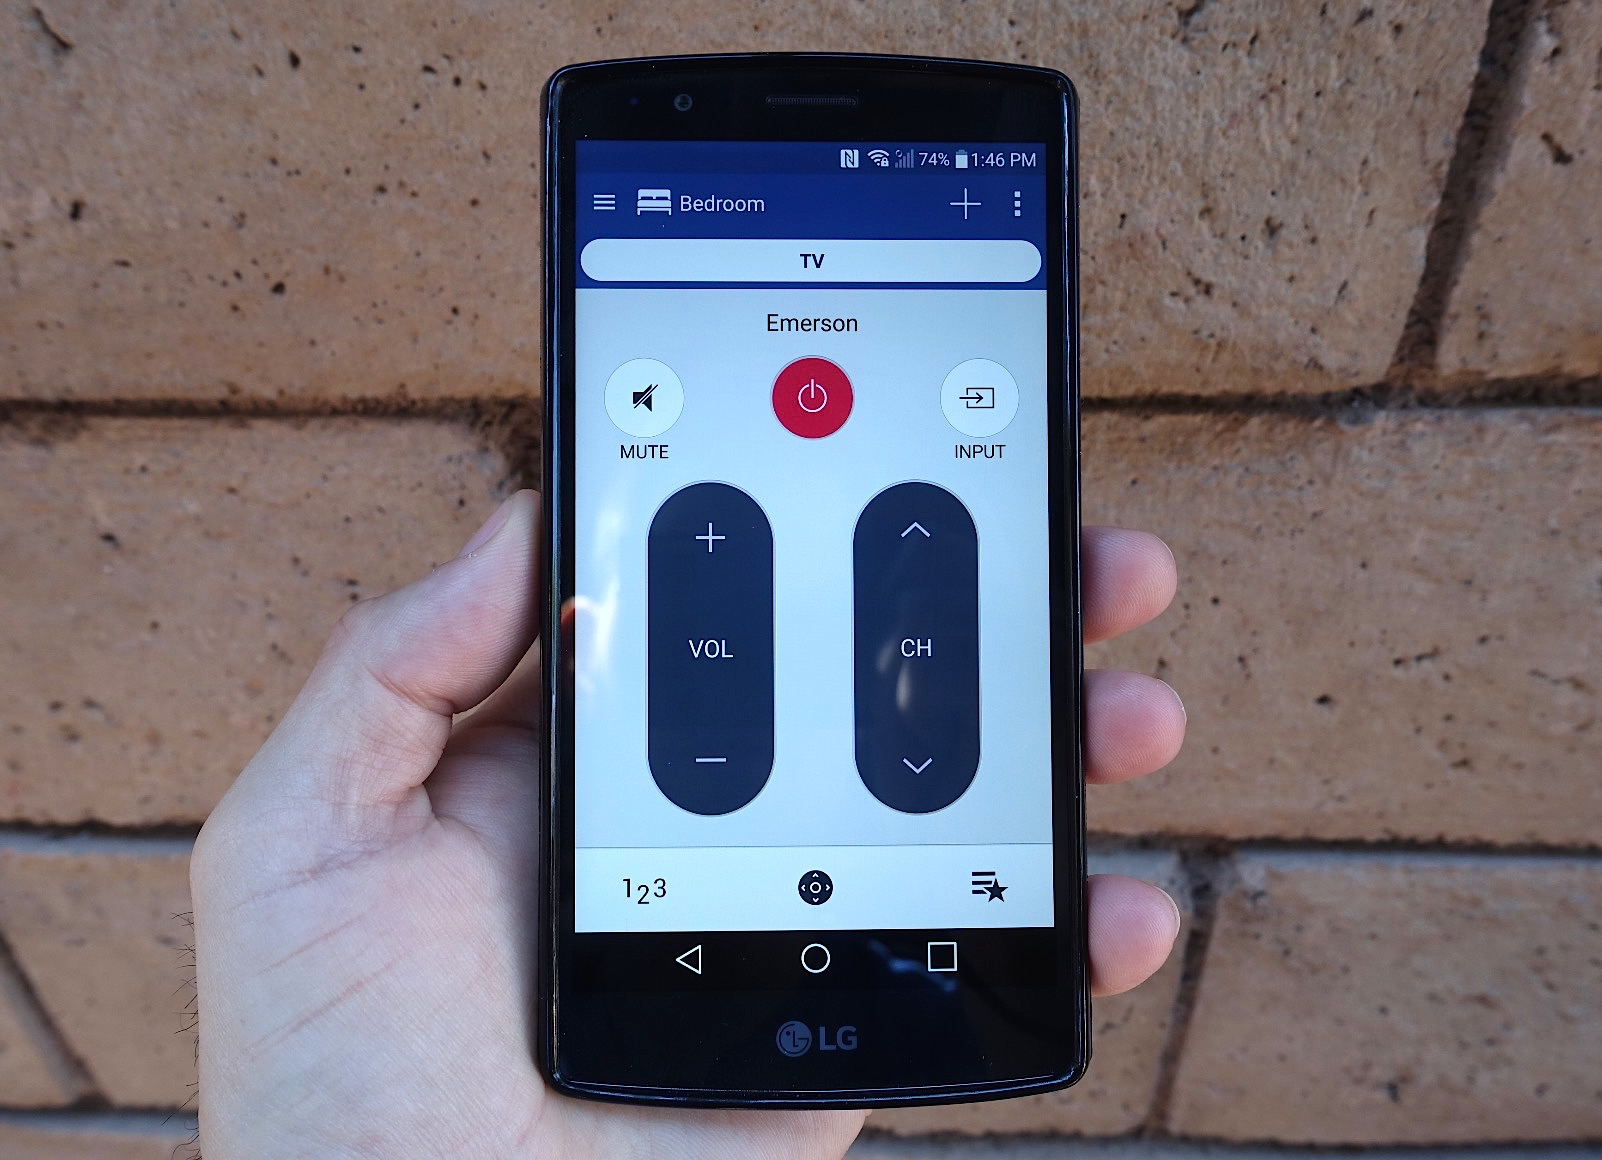 How to Use the LG G4 Remote Control App